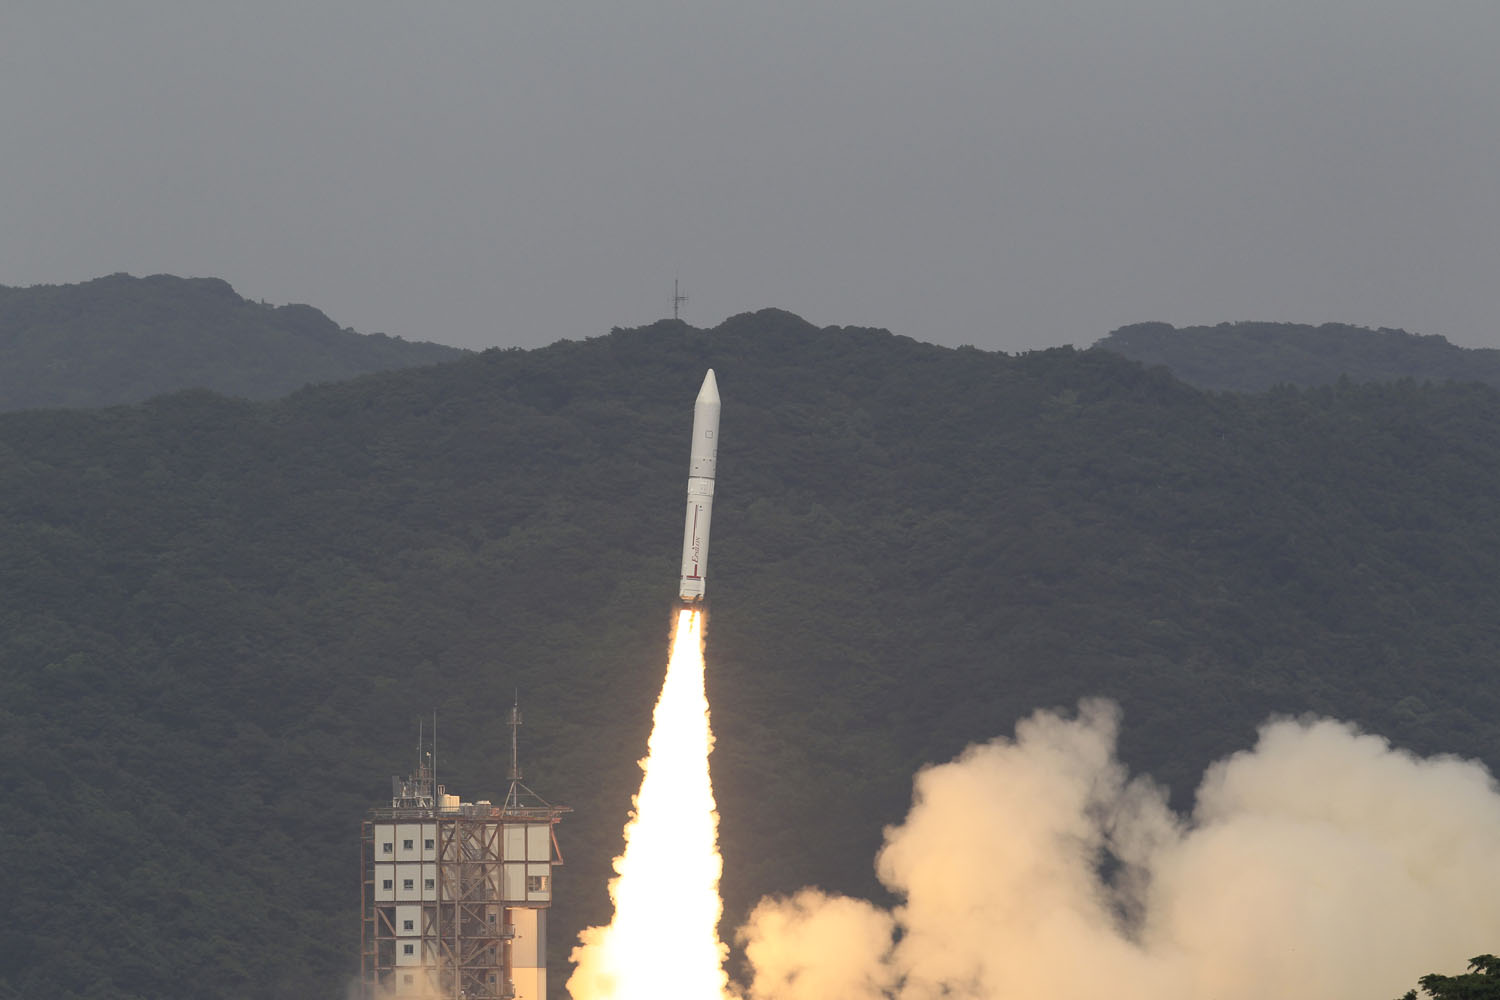 Japan's 1st Epsilon Rocket Launches Into Space On Maiden Voyage